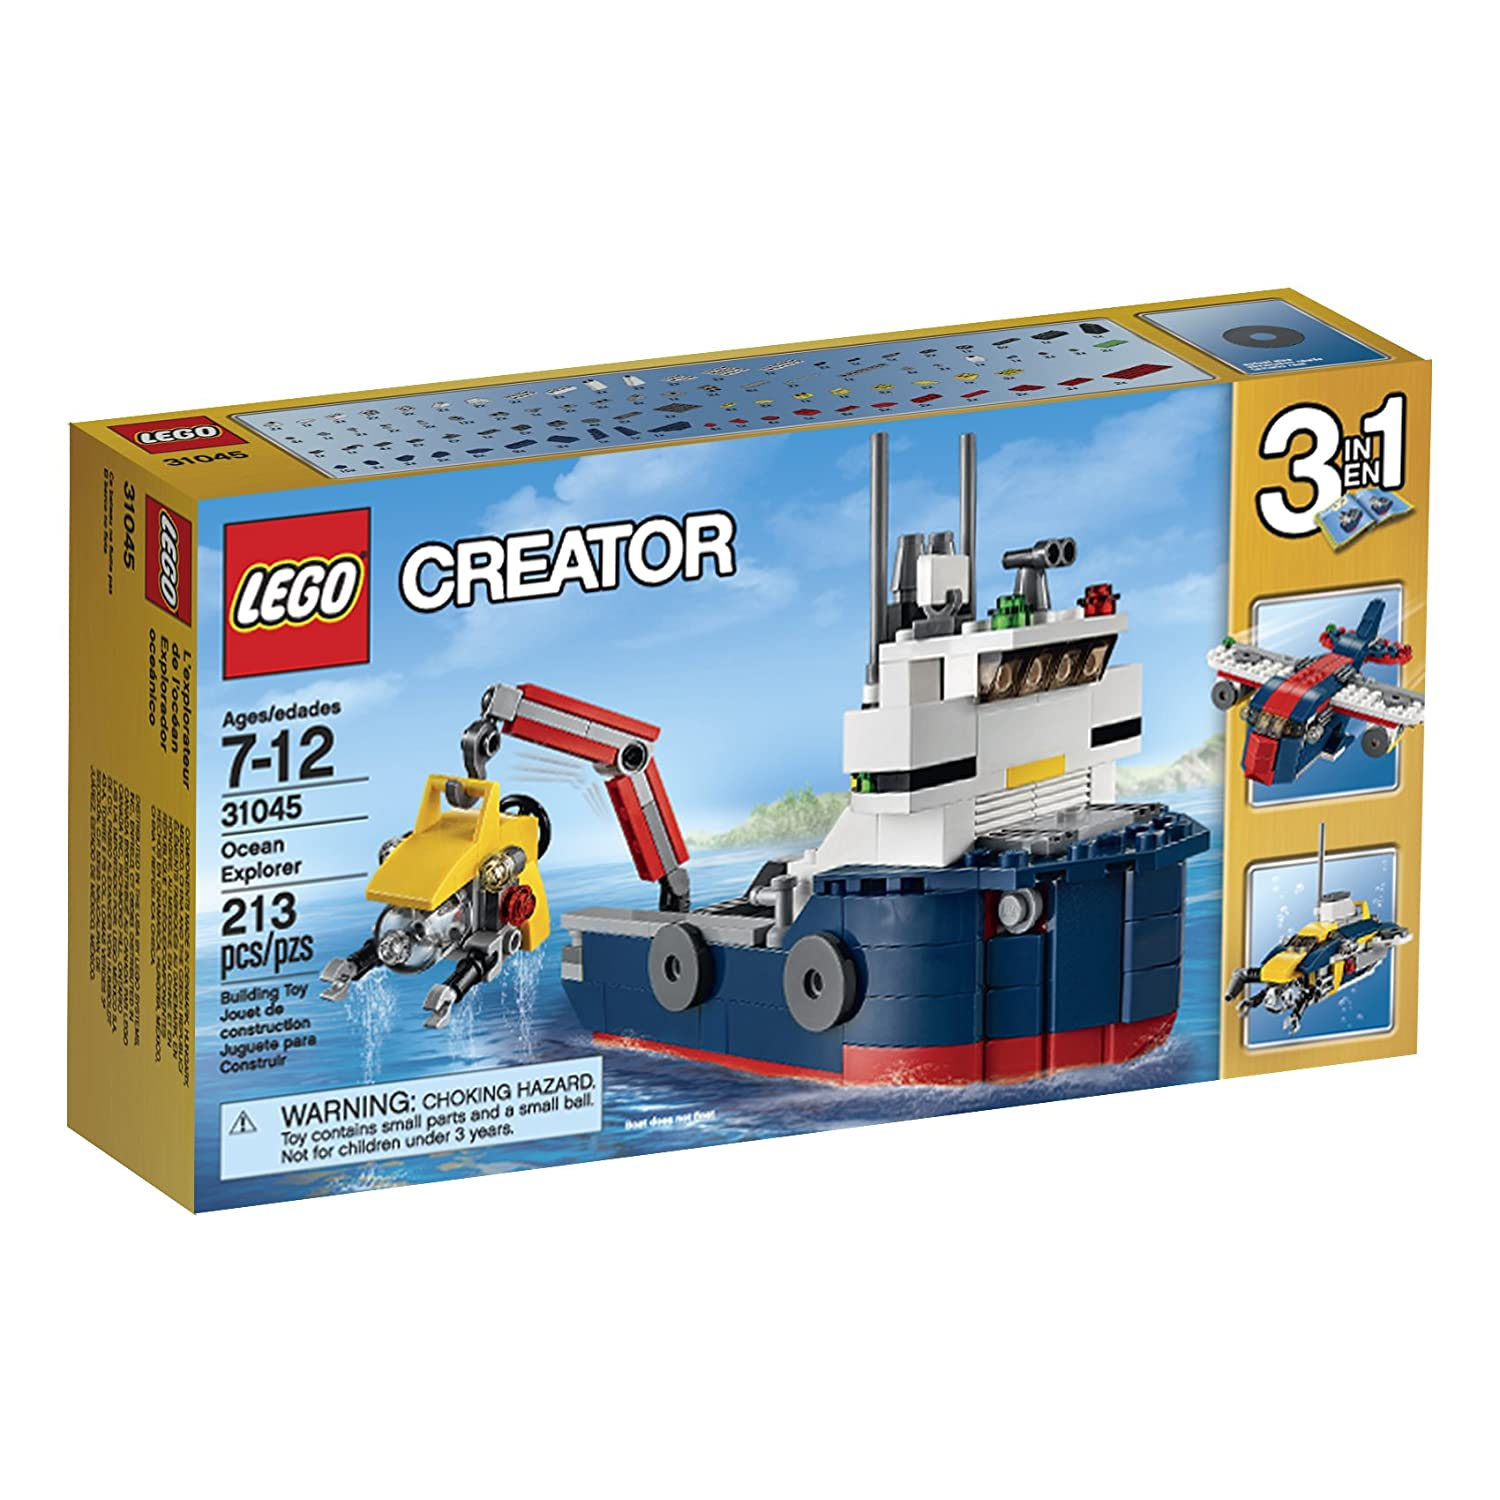 LEGO Creator Ocean Explorer (31045) Speed Build